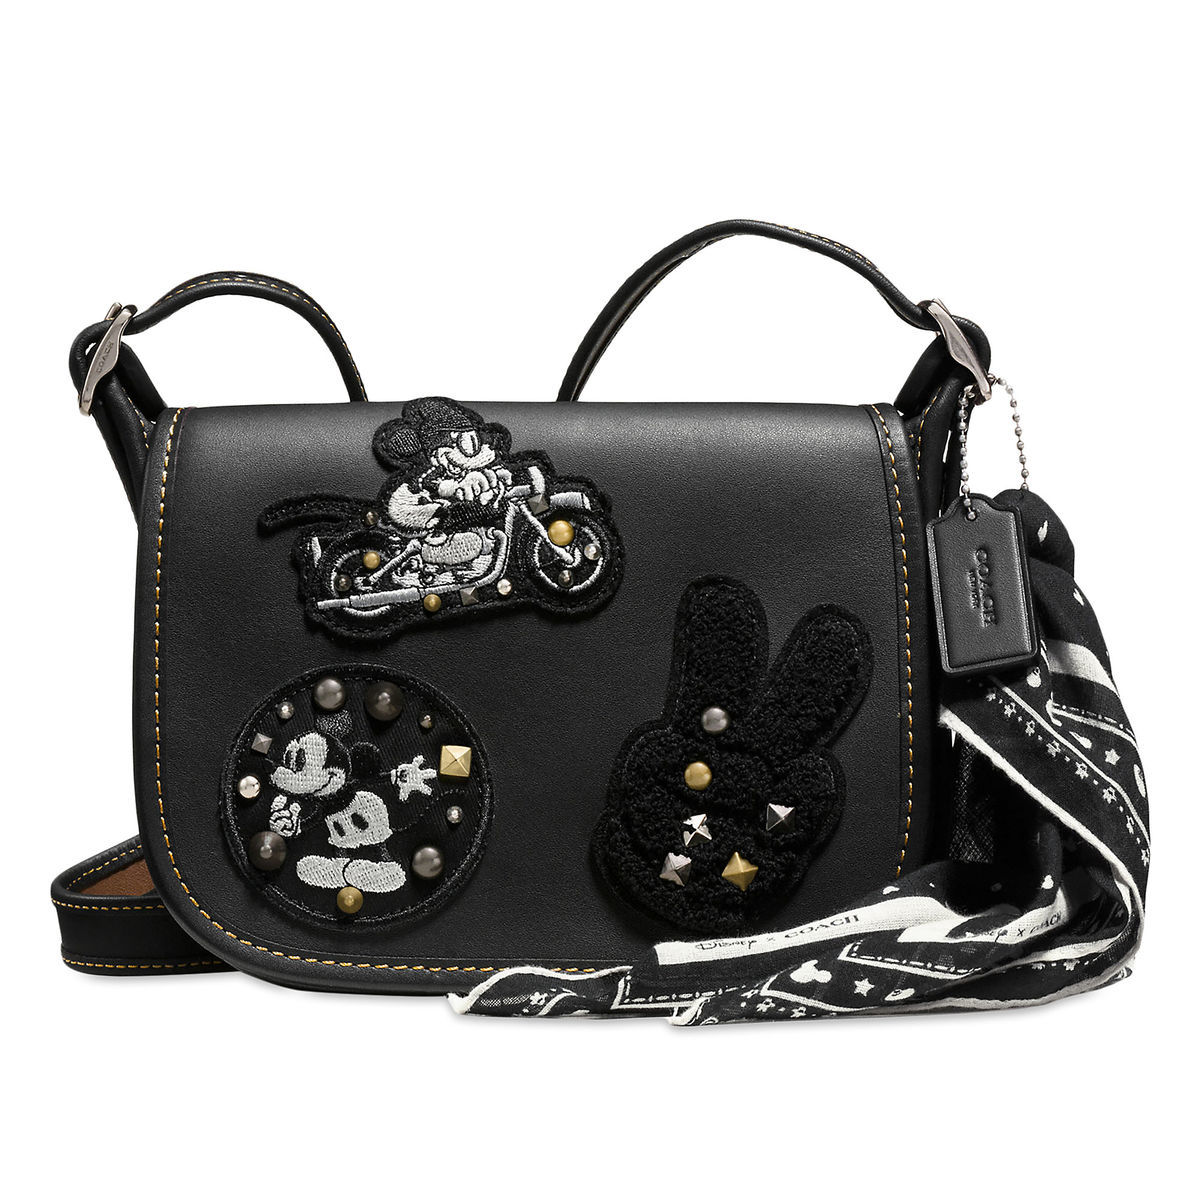 Product Image Of Mickey Mouse Patch Patricia Leather Saddle Bag By Coach Black 1